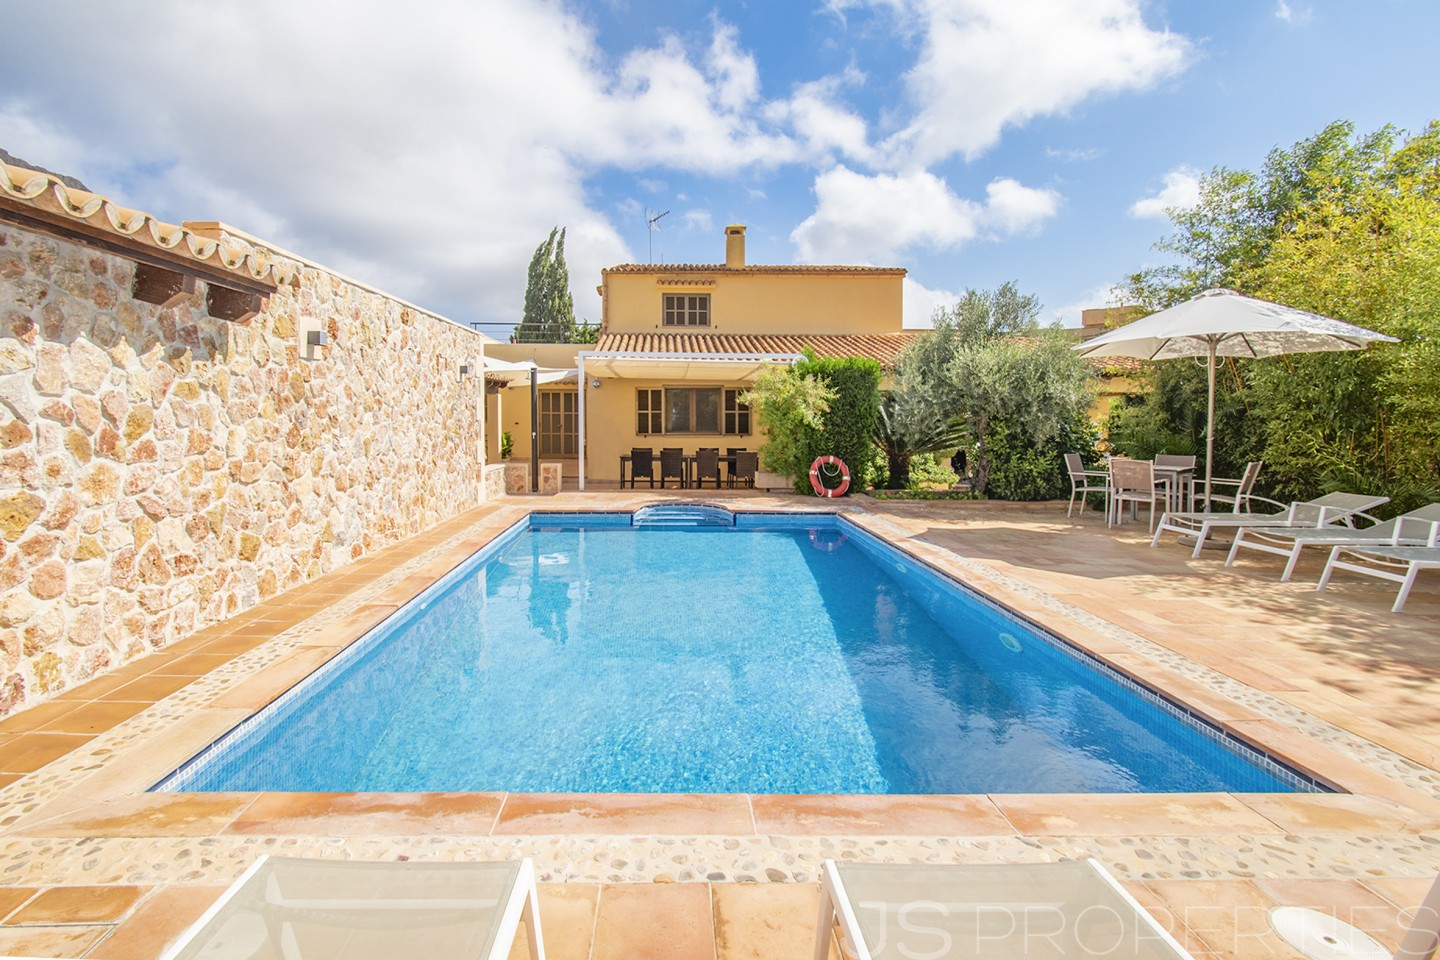 GREAT VILLA WITHIN WALKING DISTANCE TO PUERTO POLLENSA